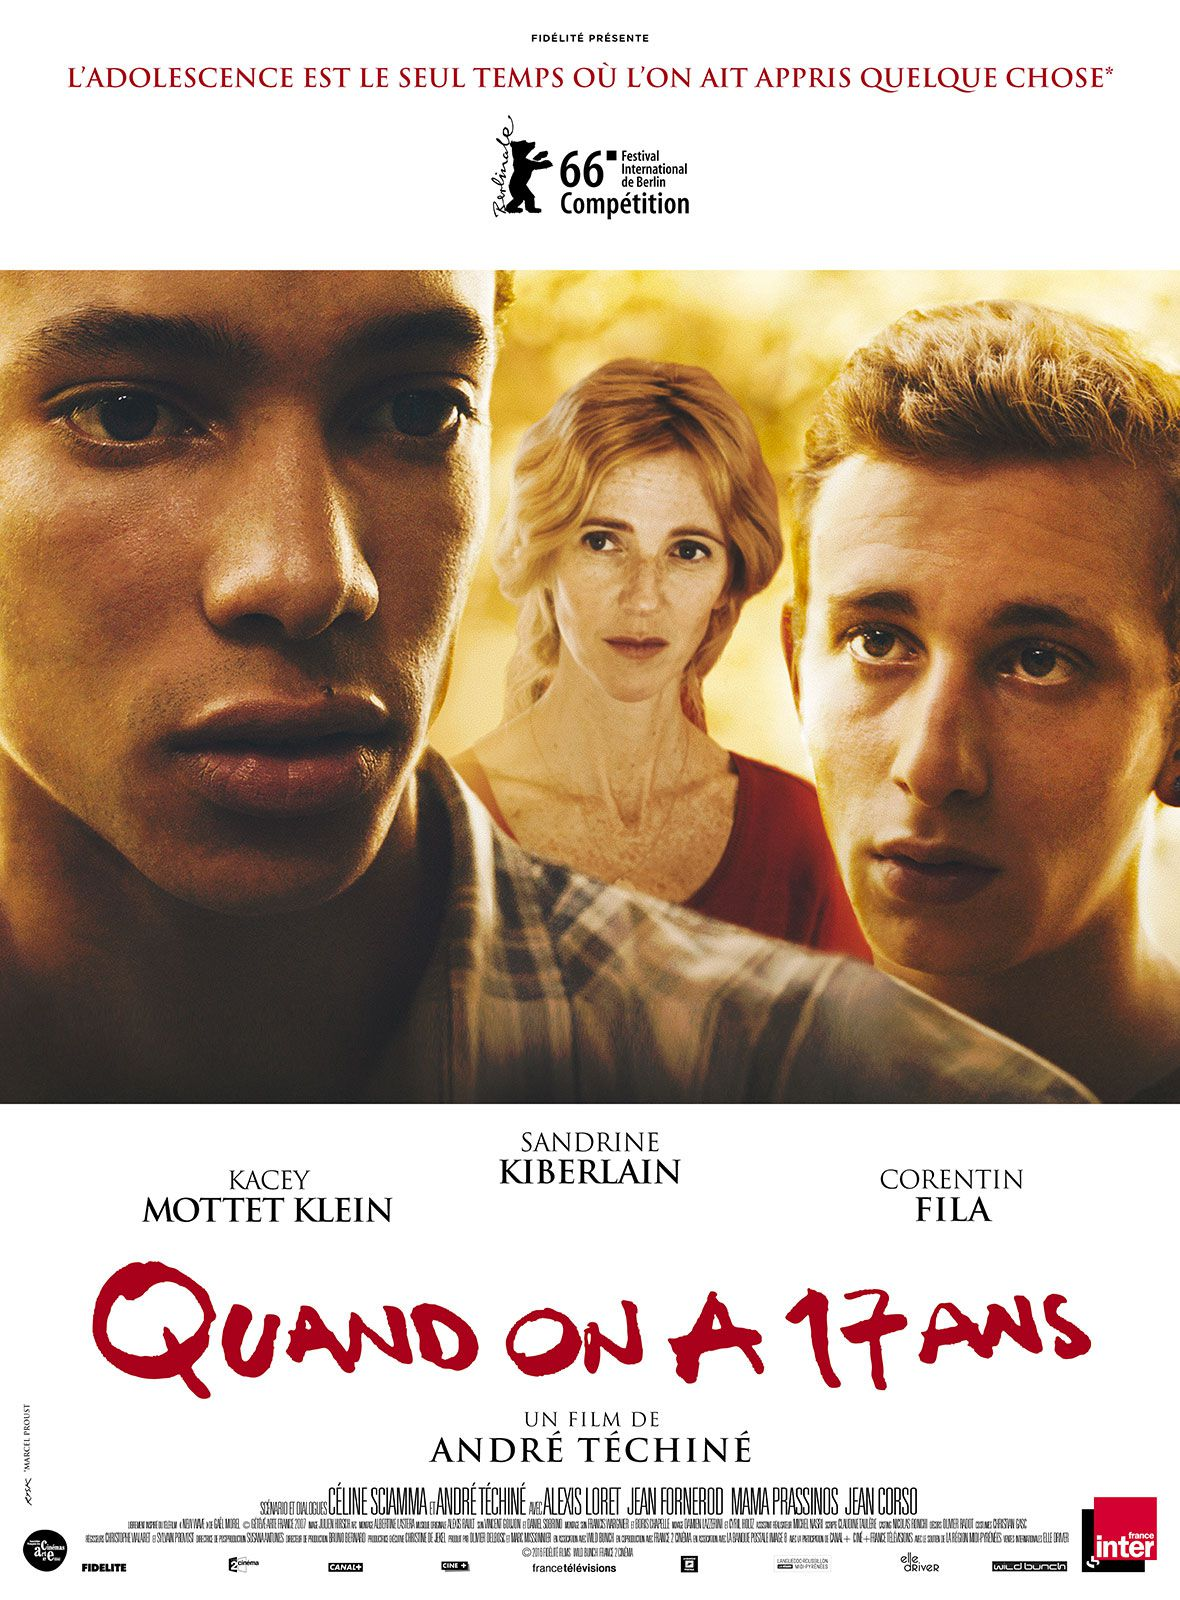 Quand on a 17 ans - Film (2016) streaming VF gratuit complet